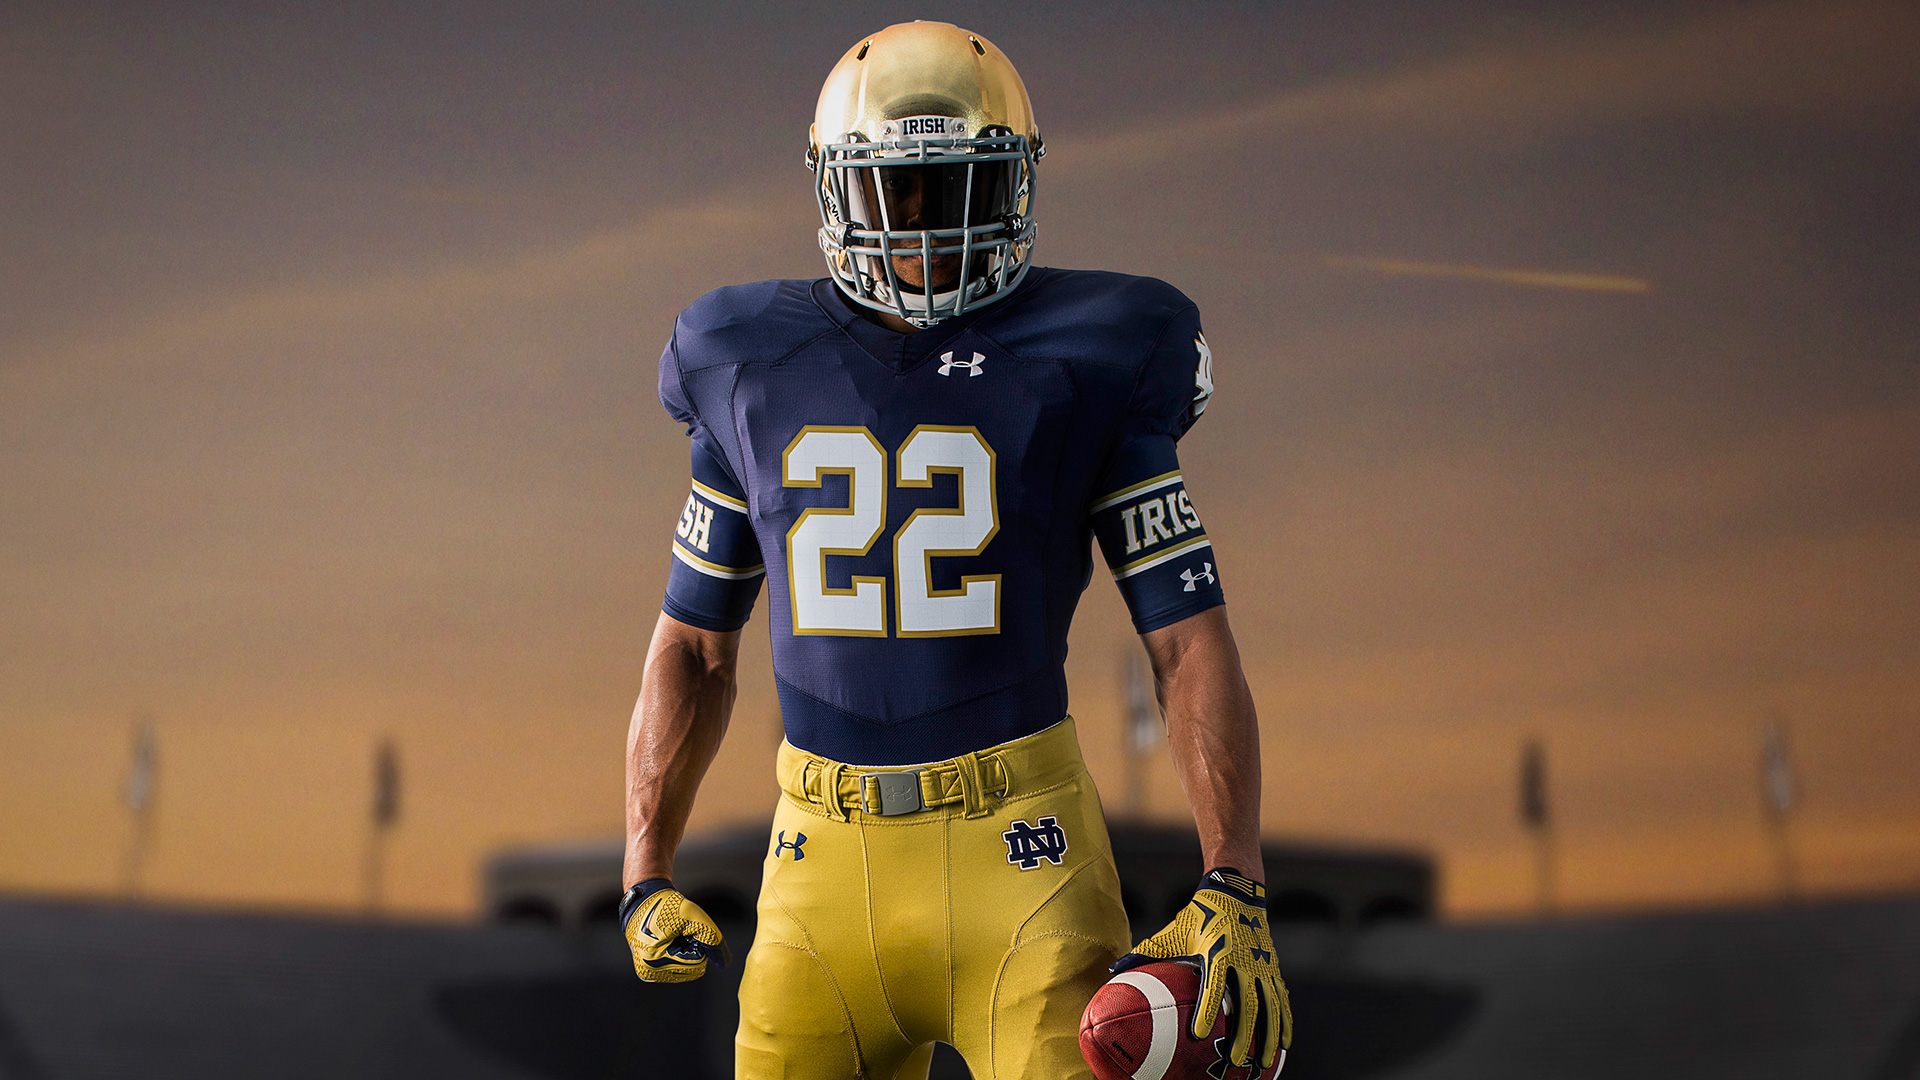 Notre Dame's signature navy and gold jerseys in photos